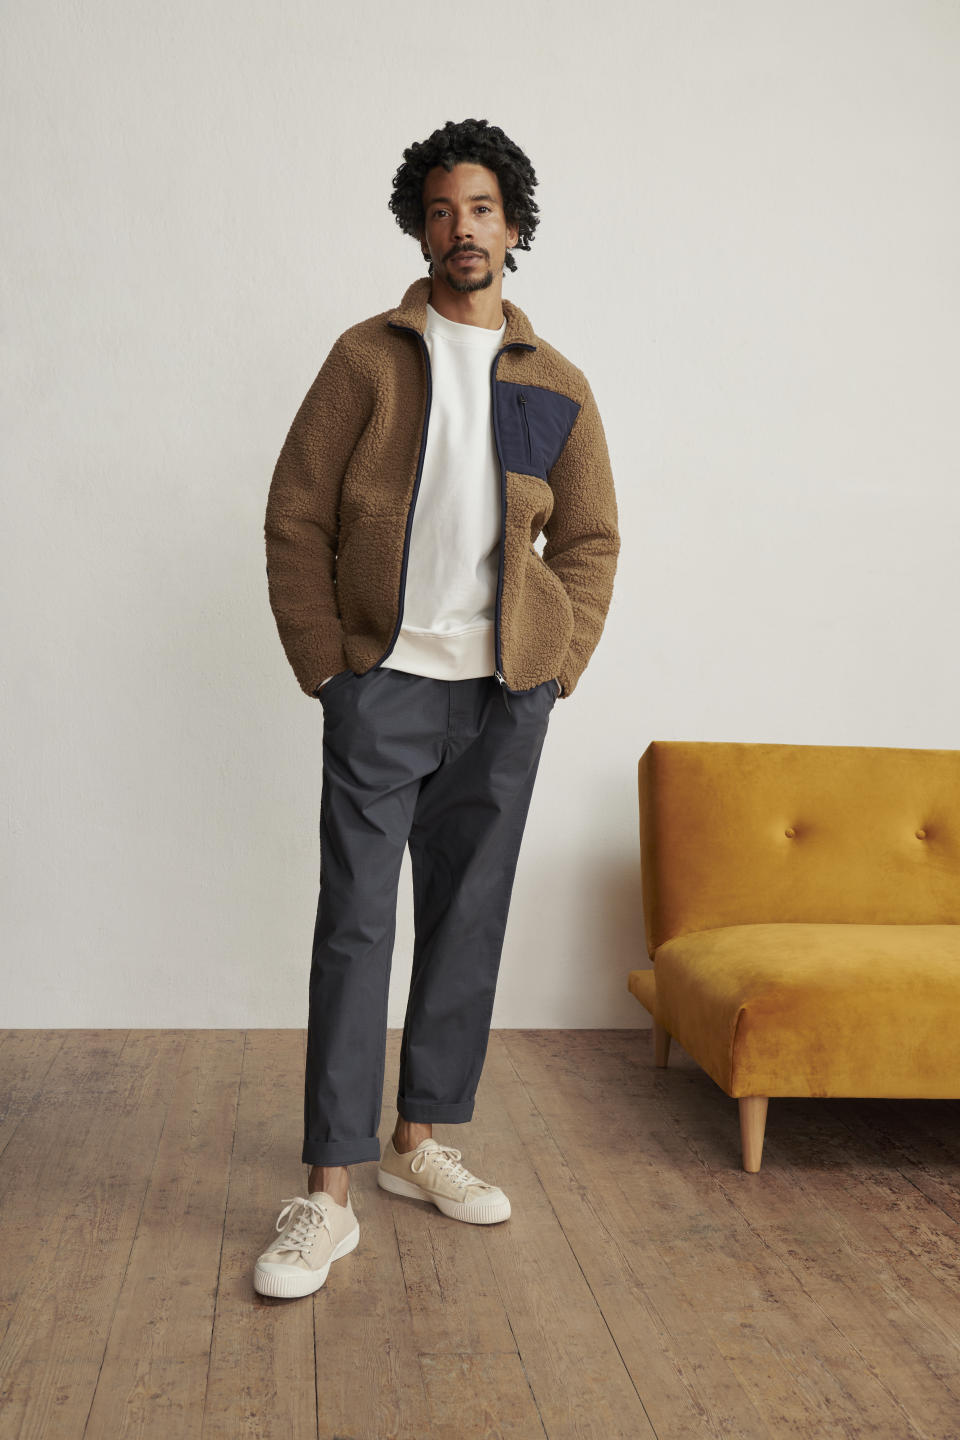 The affordable collection for women, men and children has come just in time for autumn. (John Lewis & Partners)